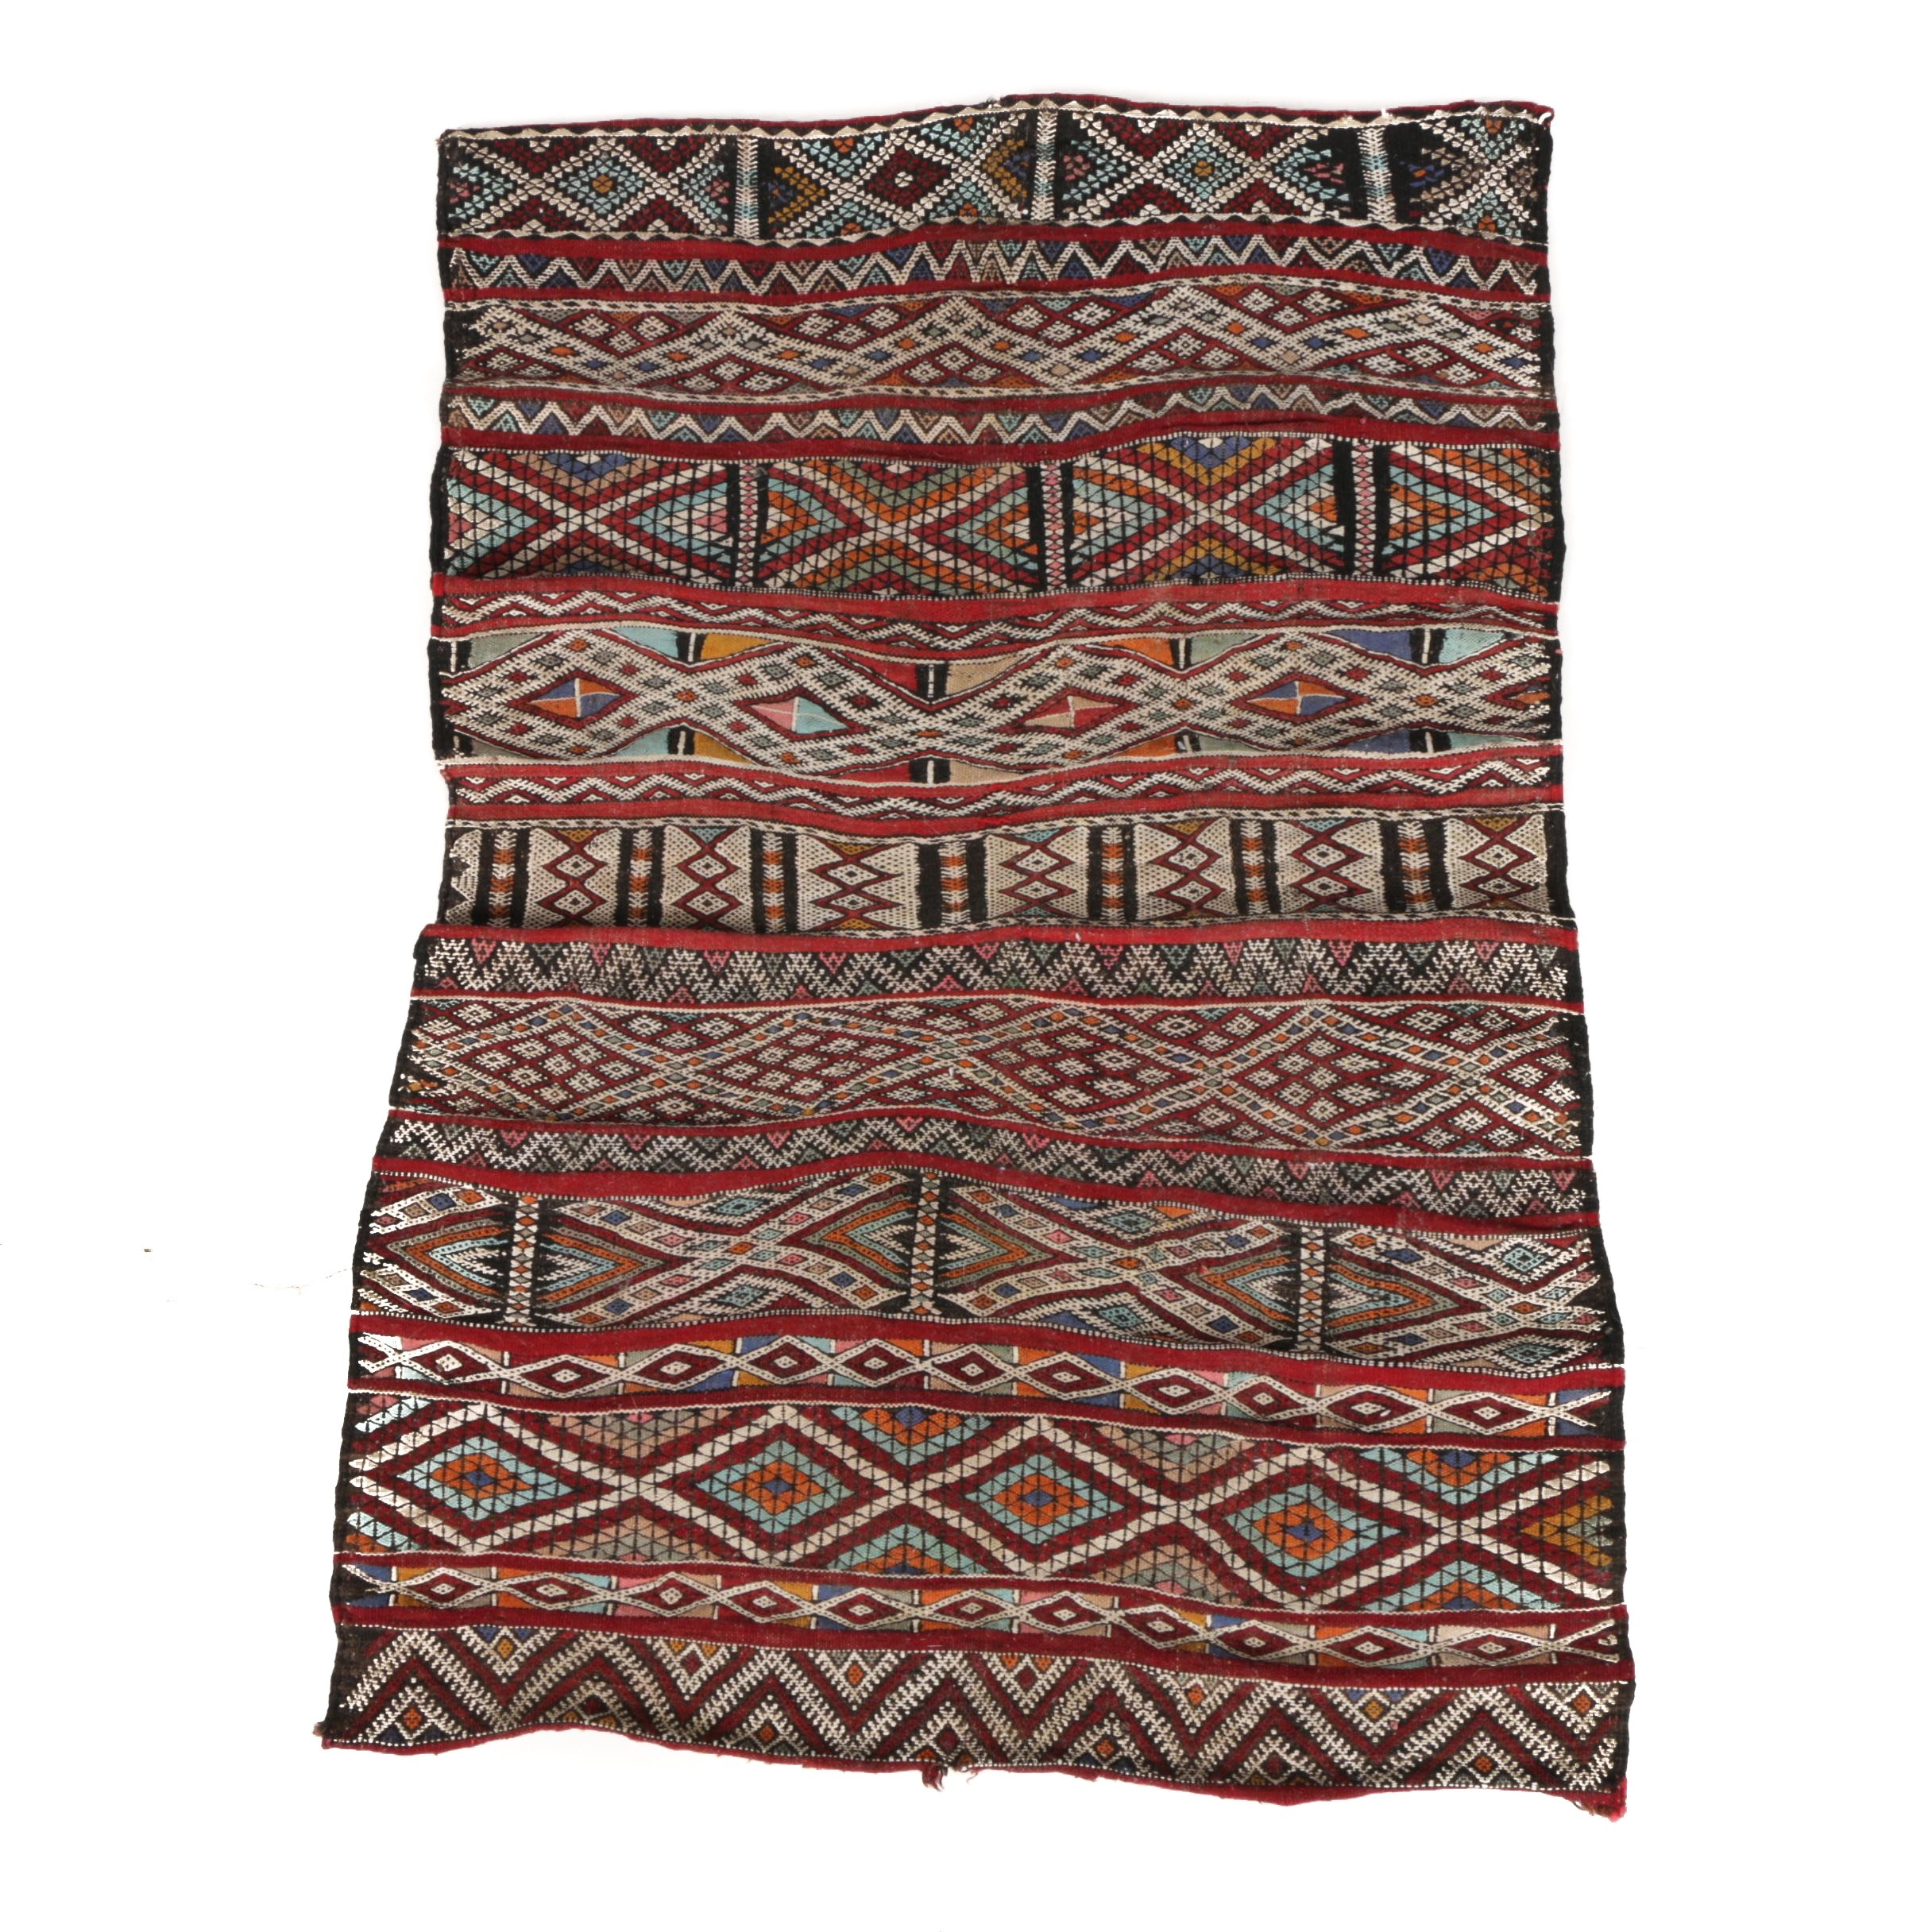 Handwoven and Embroidered Turkish Tribal Tent Decoration or Tack